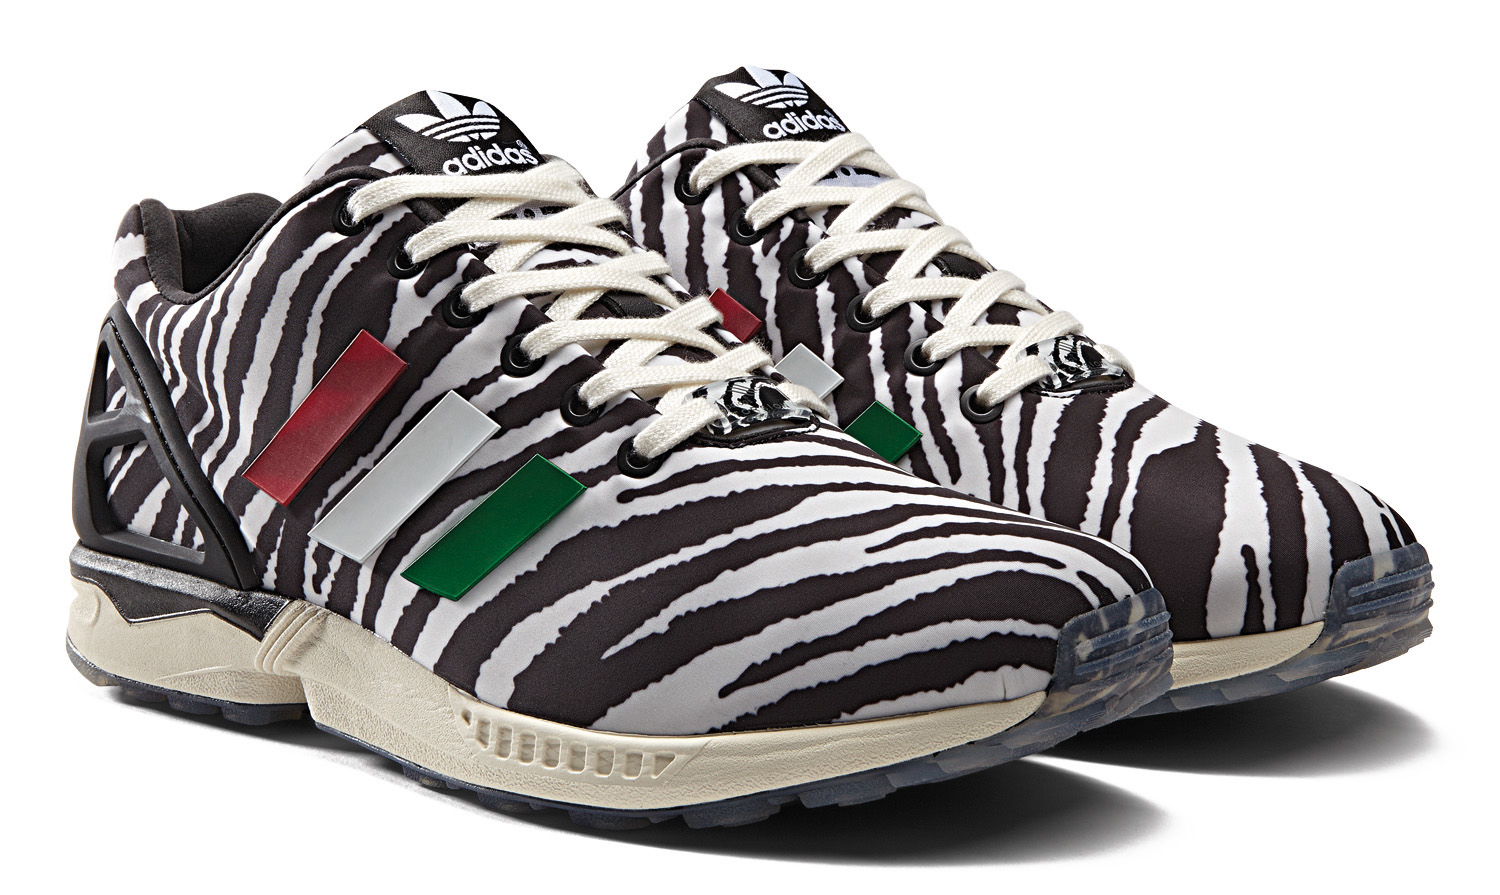 adidas Originals X Italia Independent ZX FLUX: Inspired Designs for Modern Filipinas